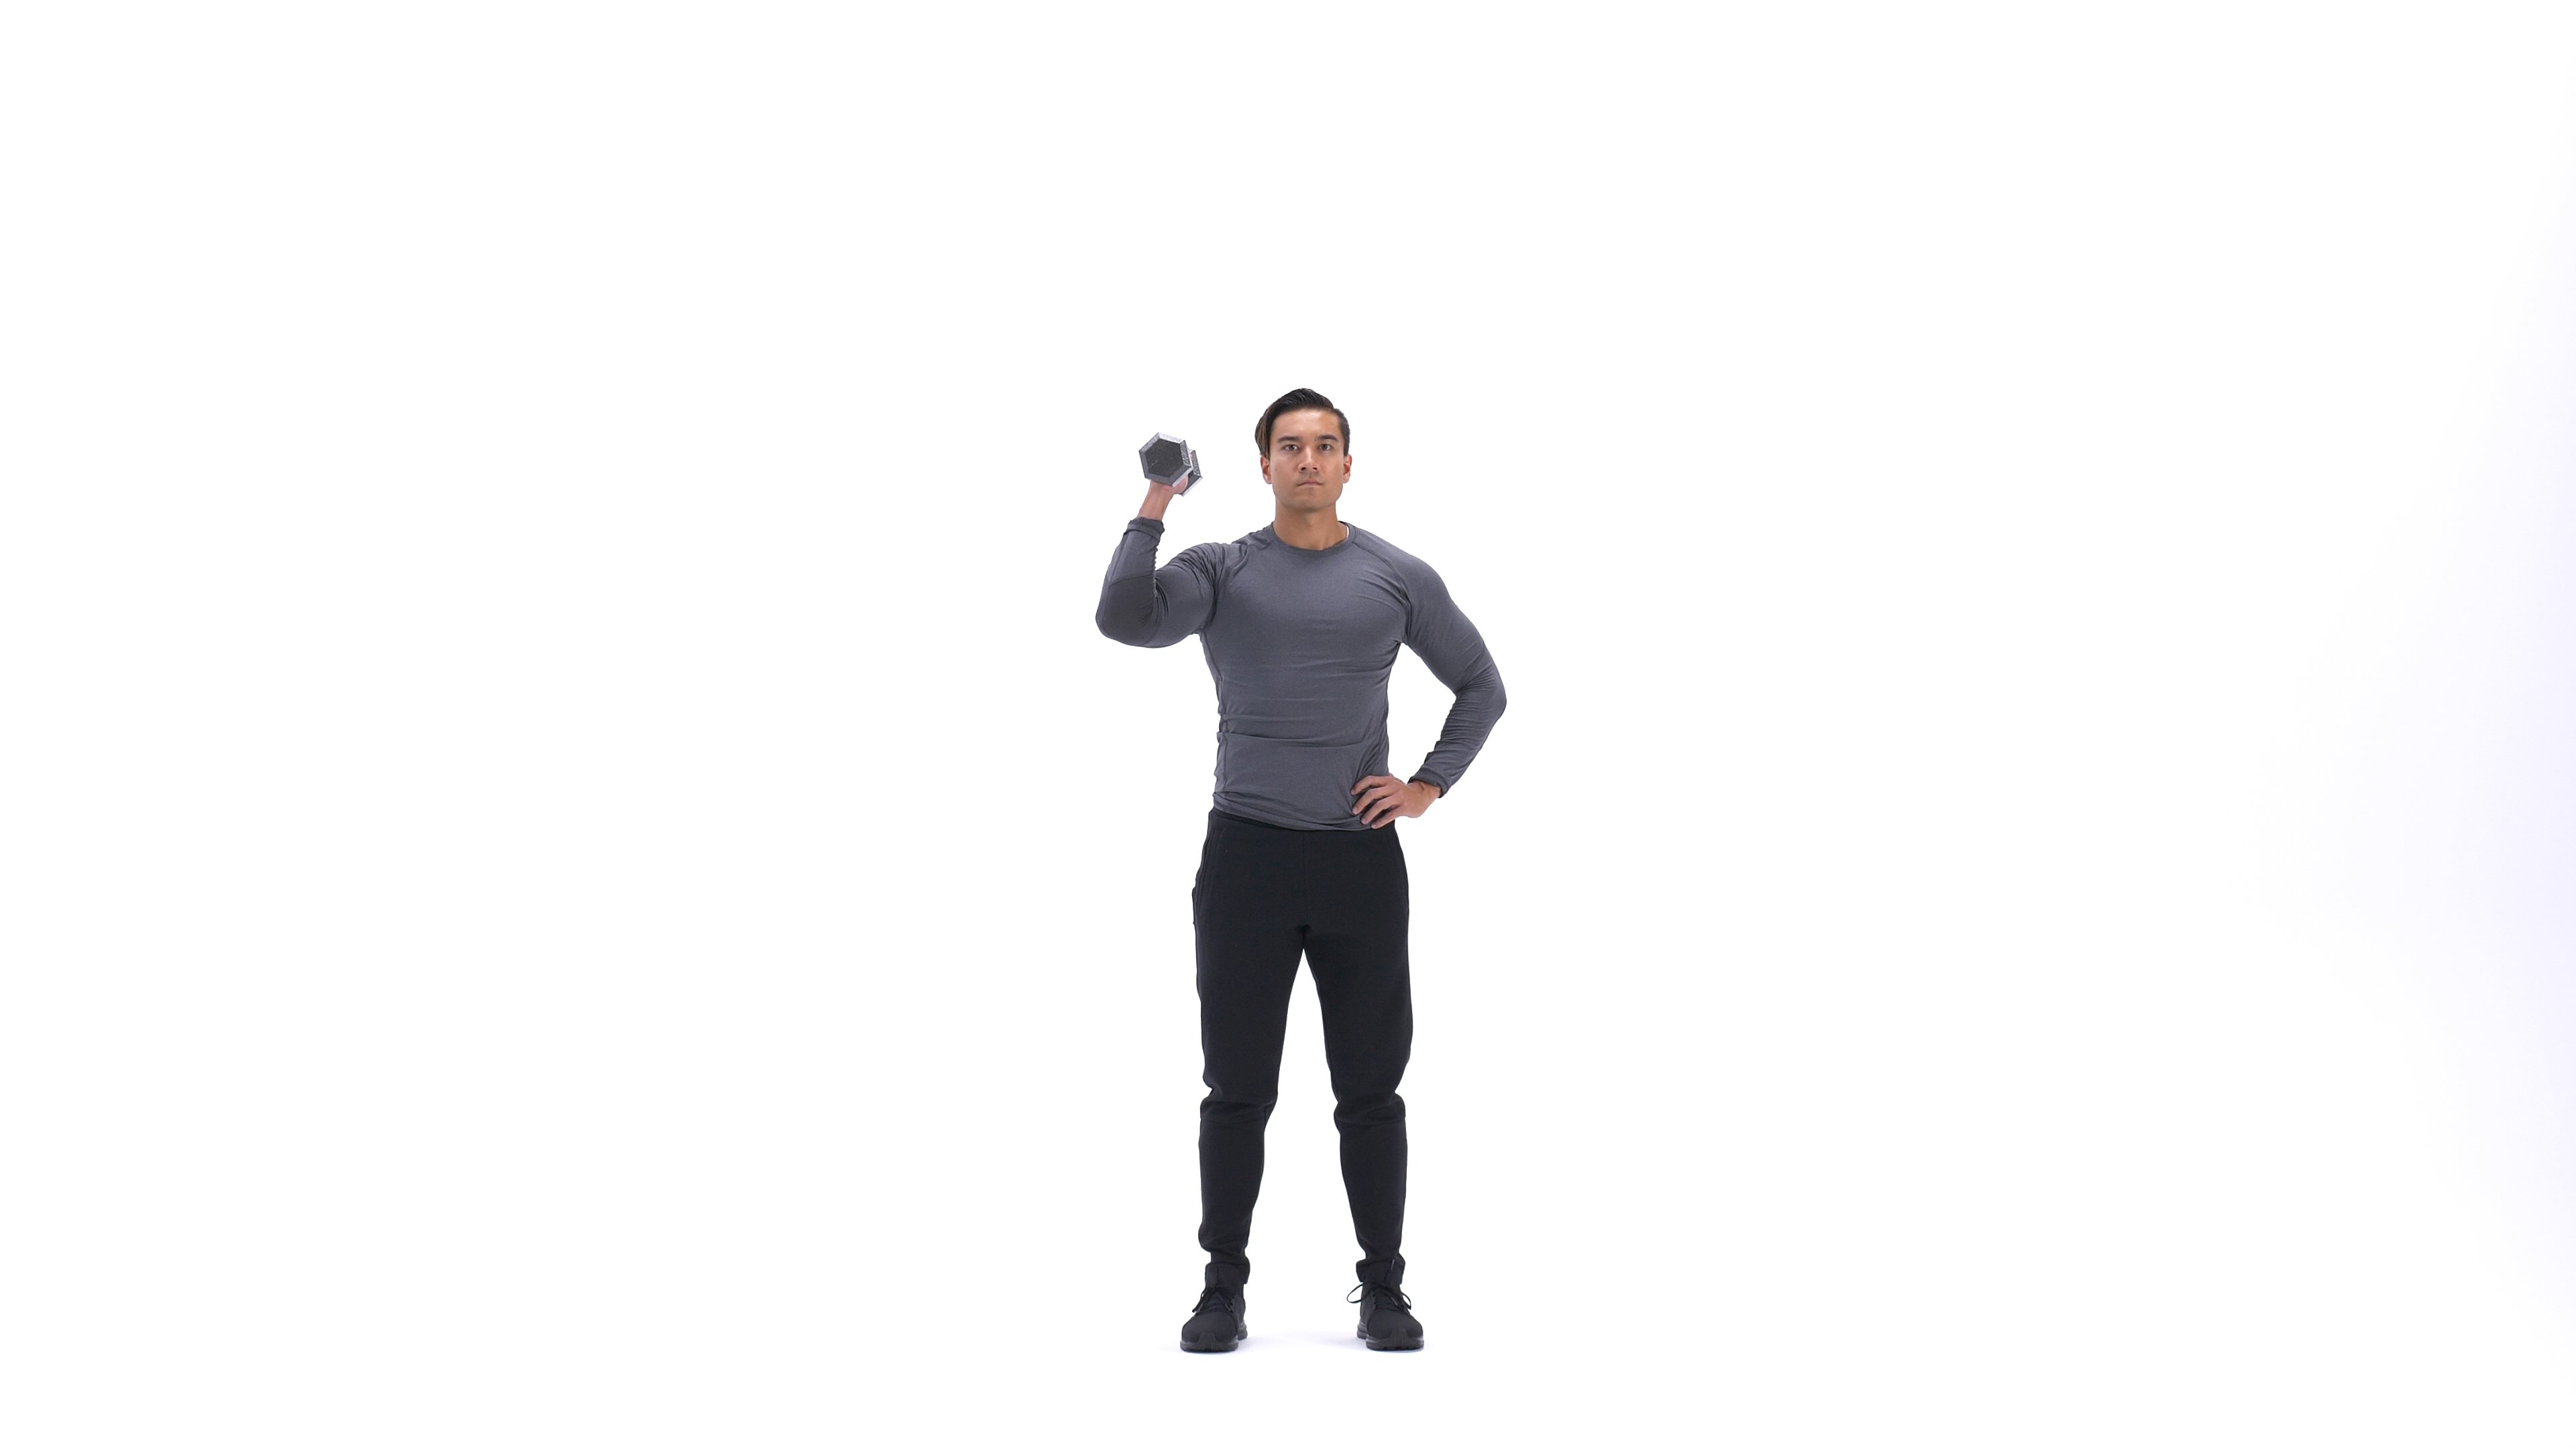 Standing Palm-In One-Arm Dumbbell Press image